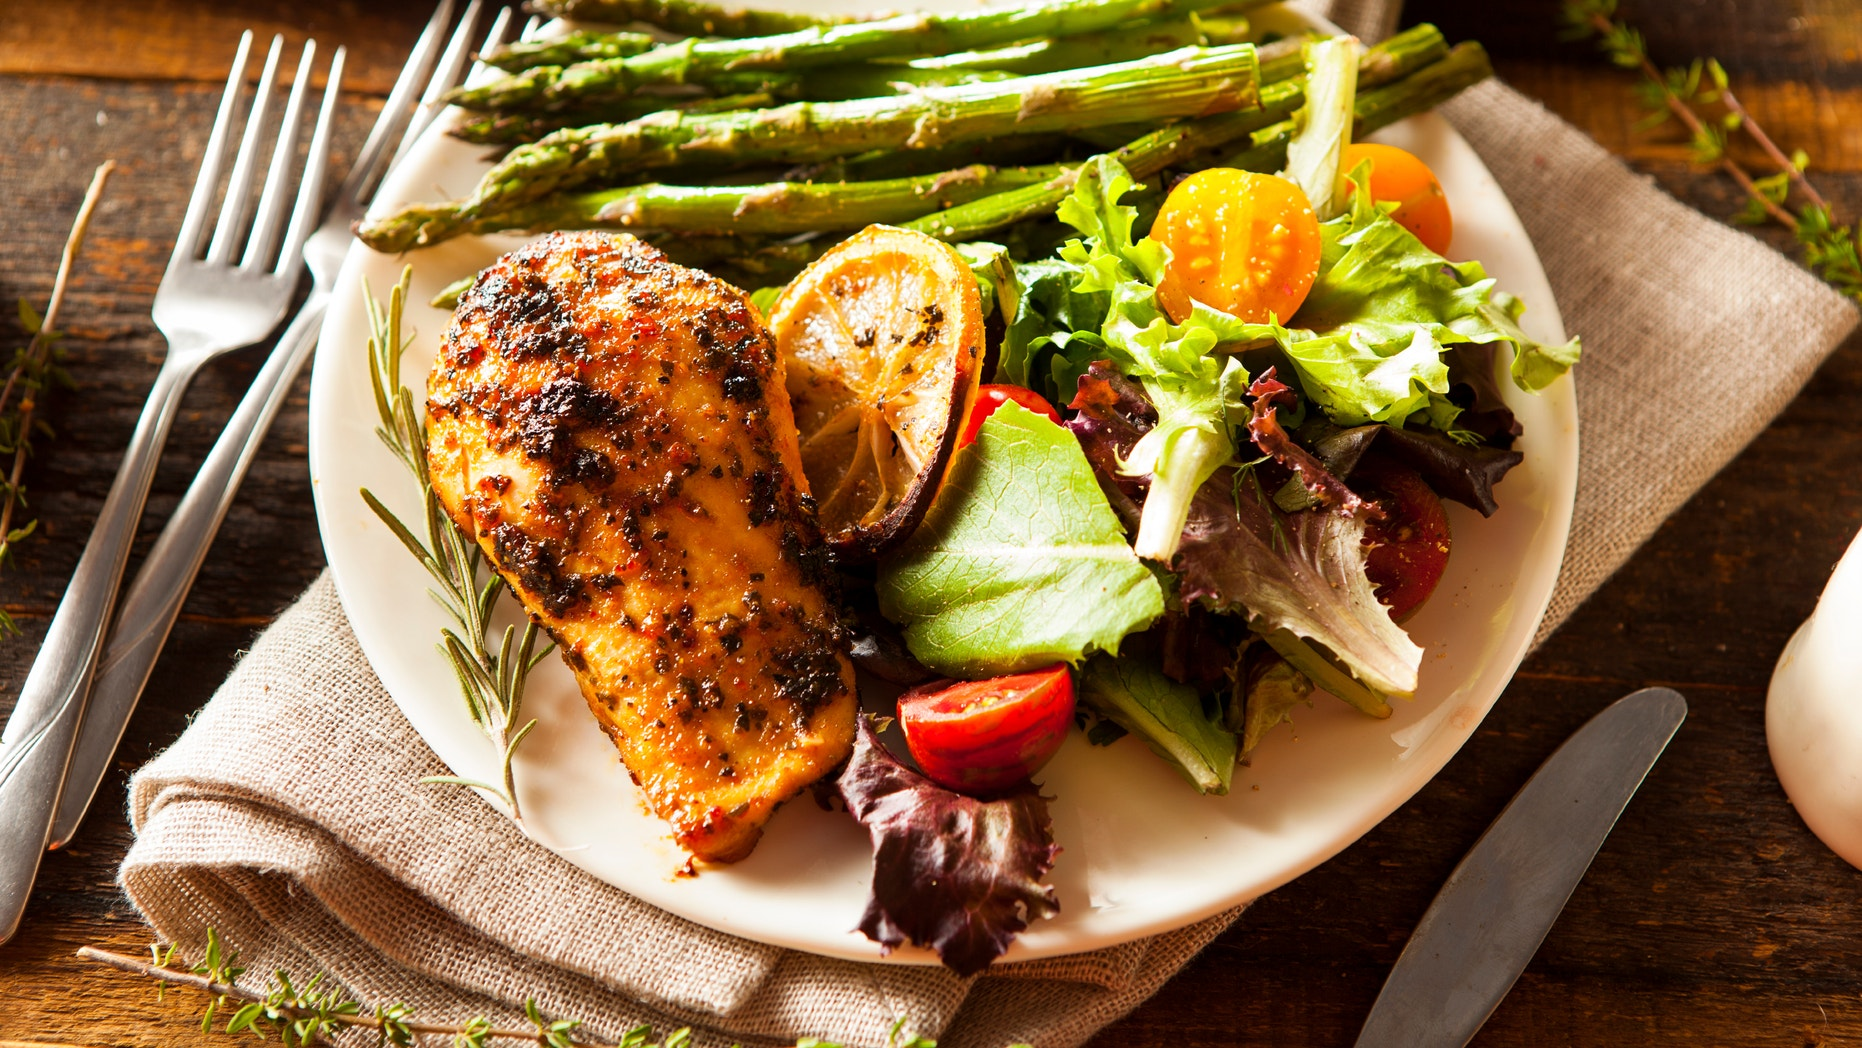 Homemade Lemon and Herb Chicken with Salad and Asparagus